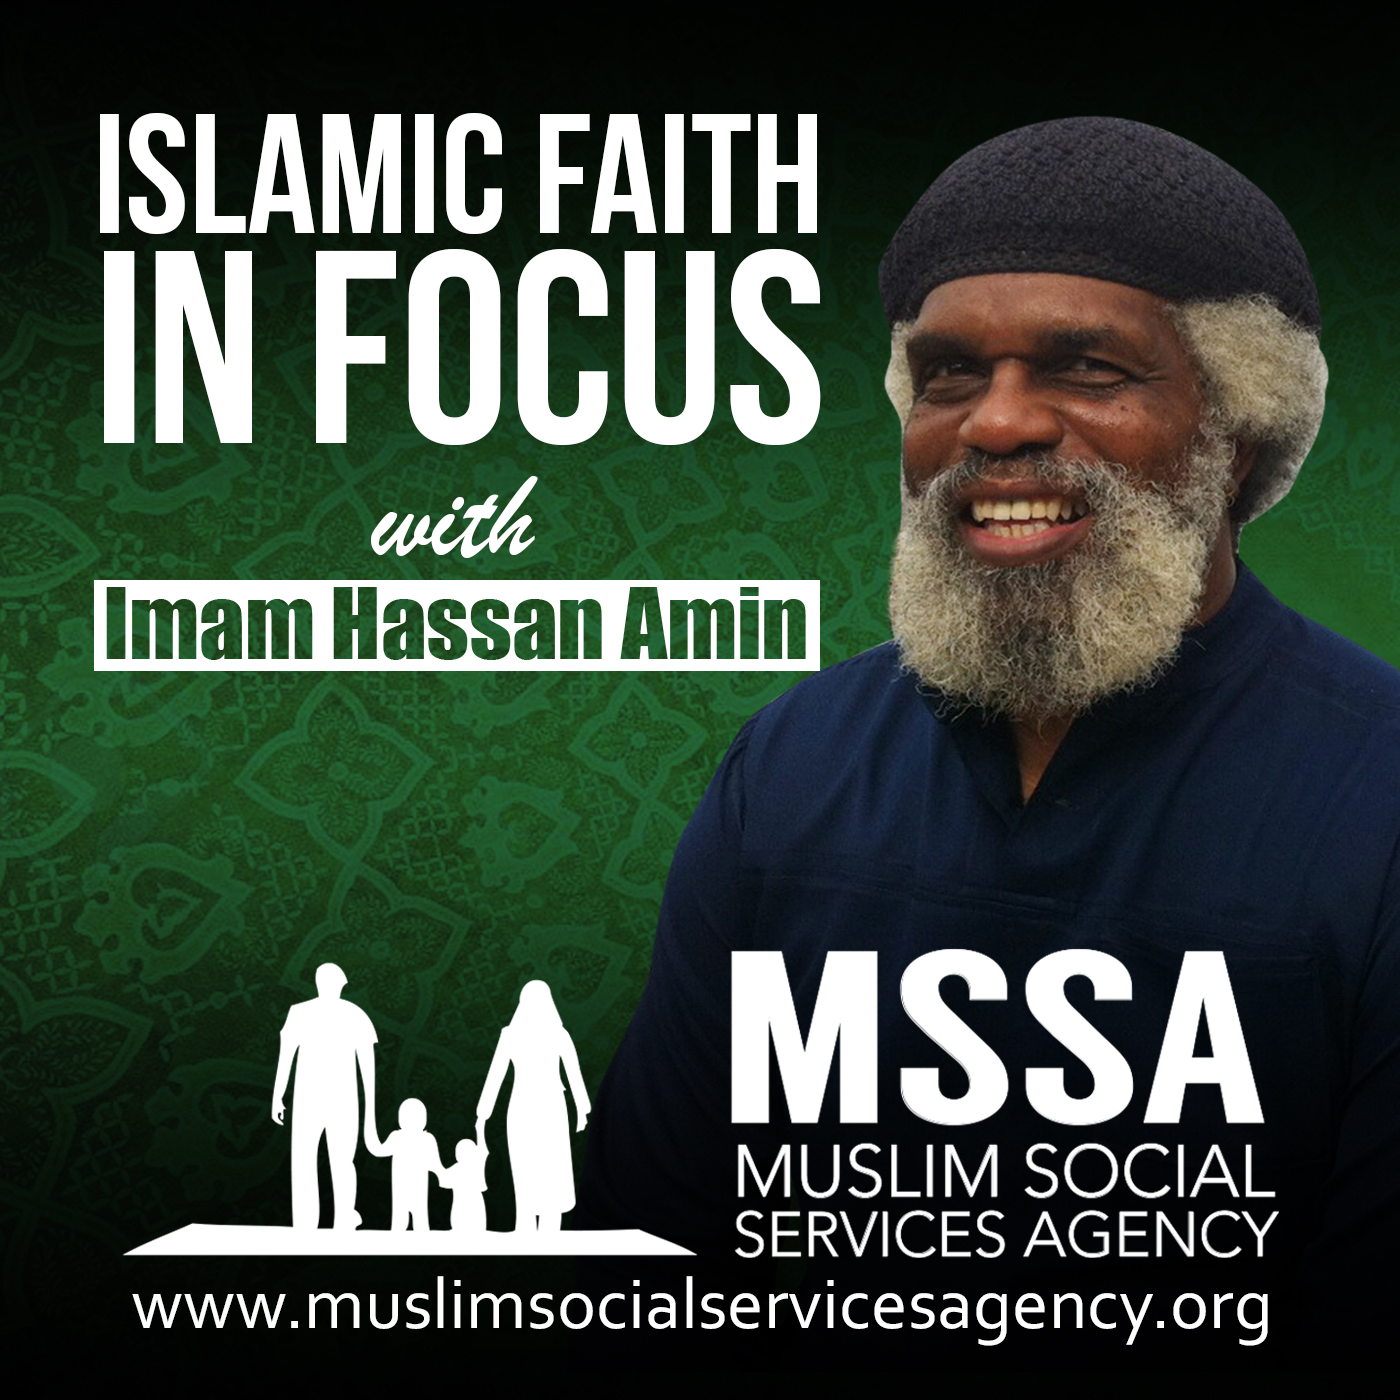 Islamic Faith in Focus with Imam Hassan Amin - Welcome to the Venn Network